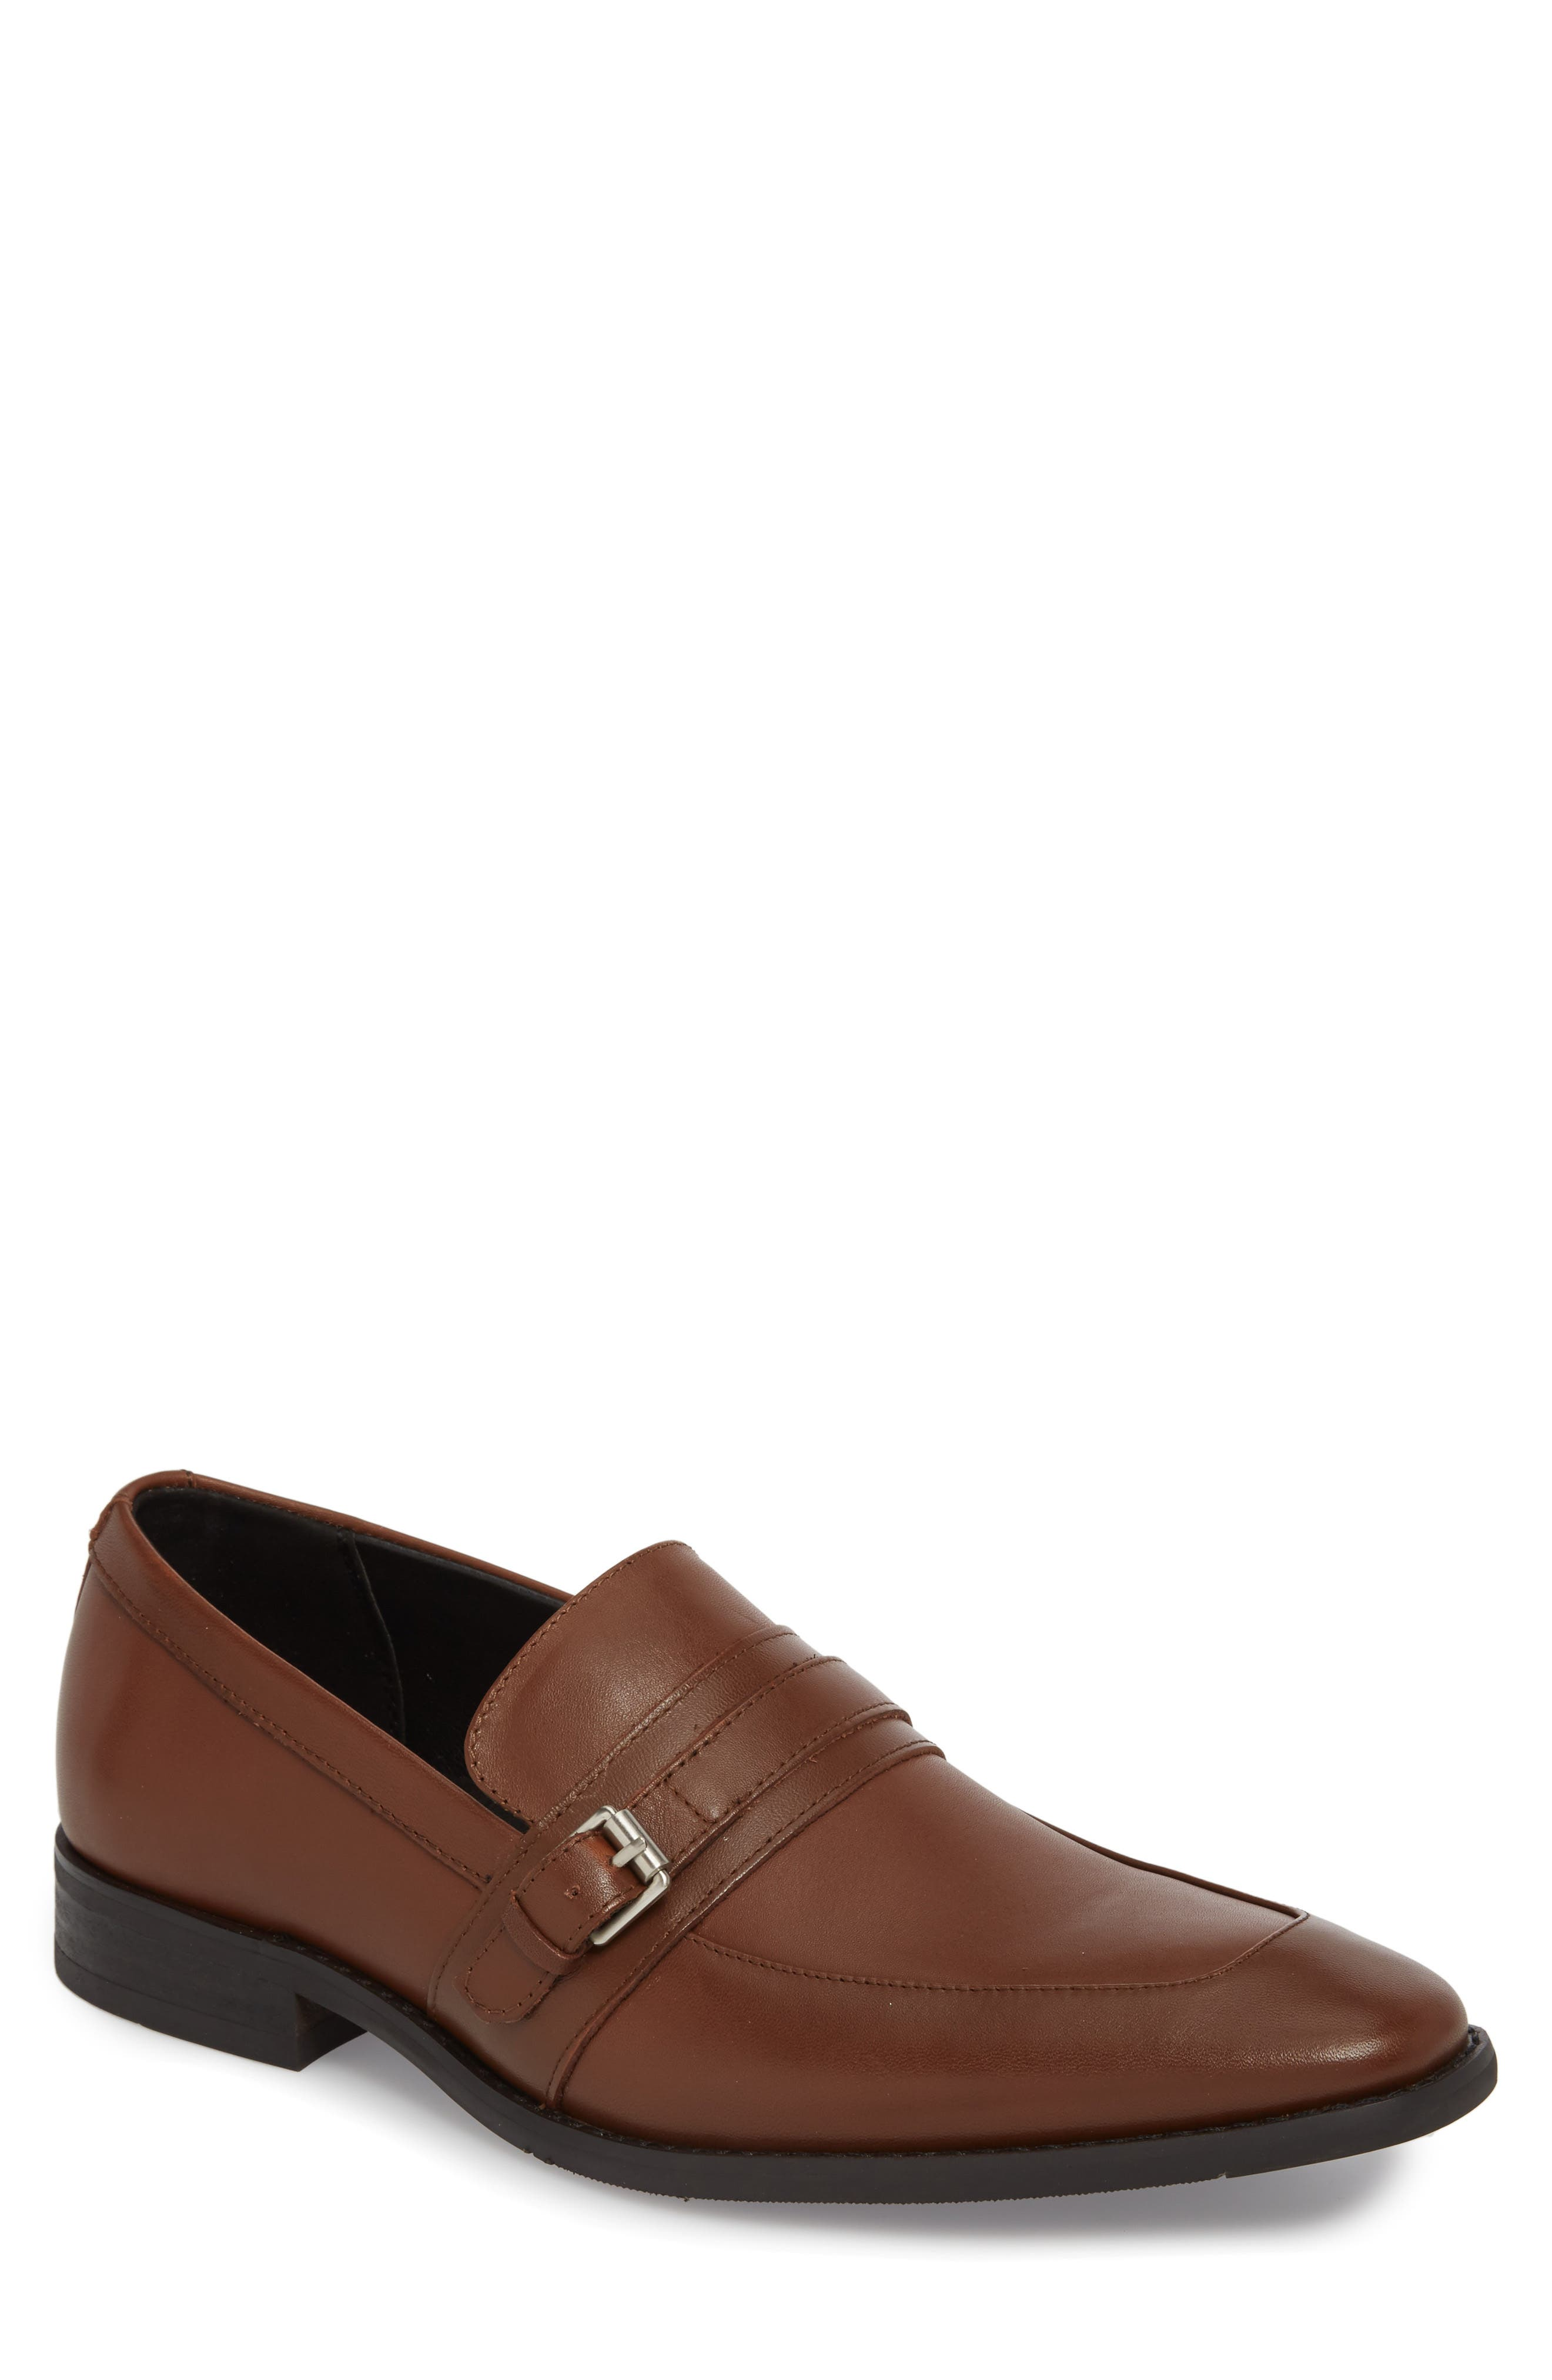 Reyes Loafer,                             Main thumbnail 1, color,                             Tan Leather